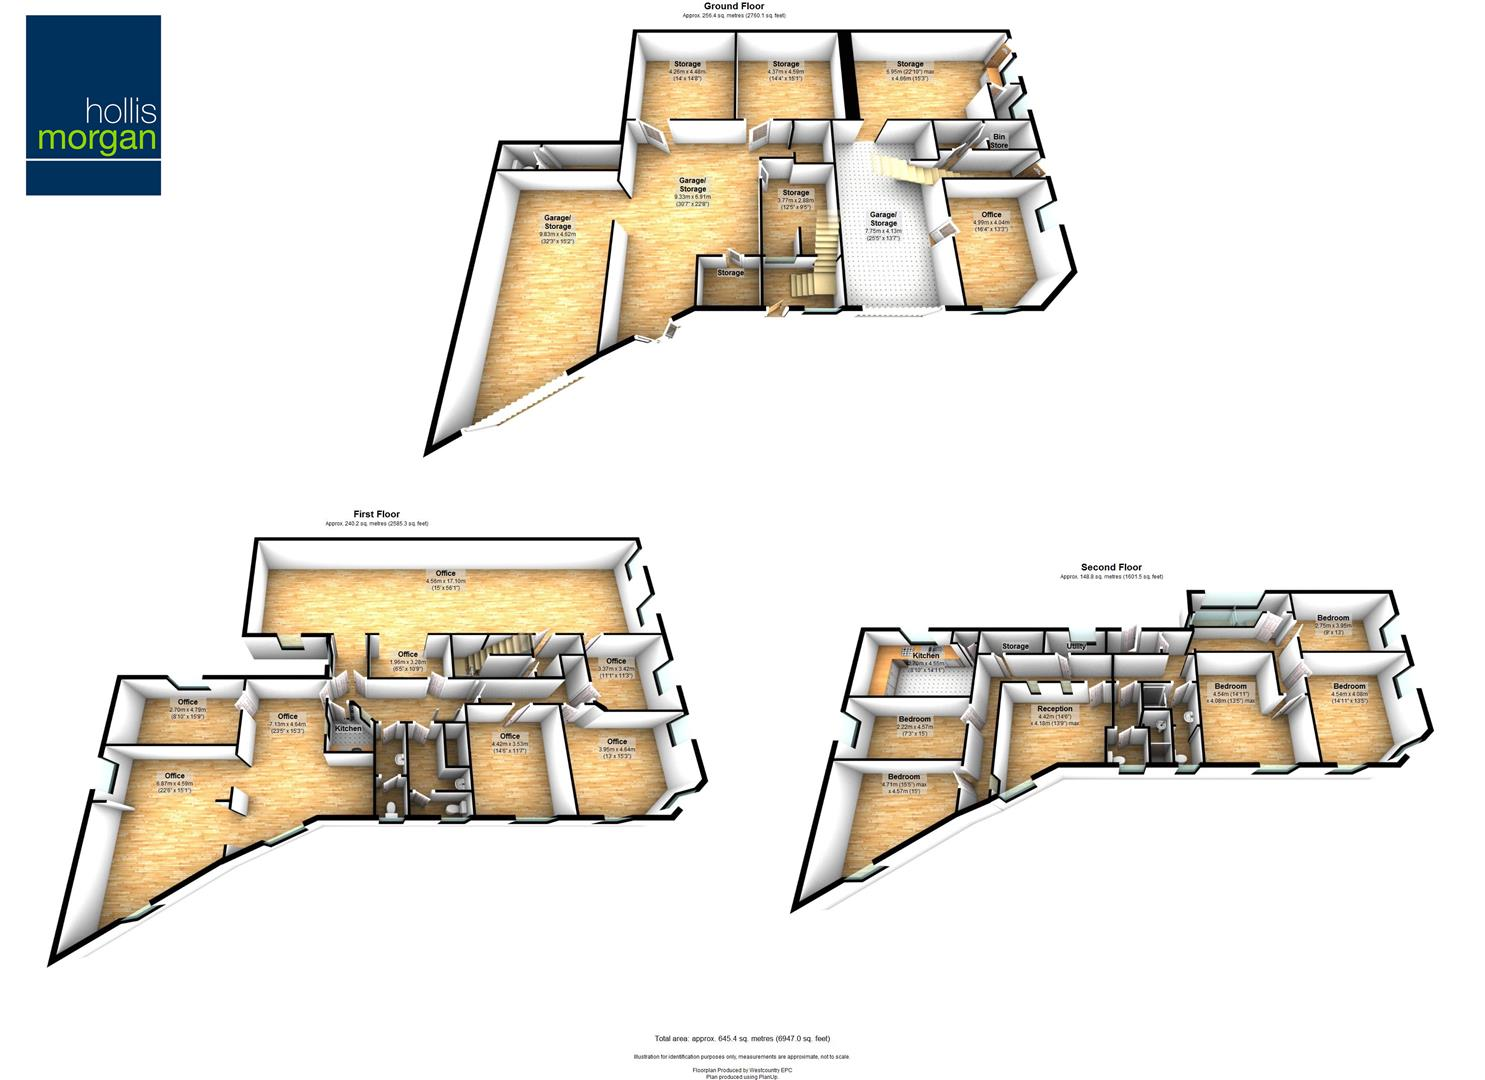 Floorplans For Upper York Street, Stokes Croft, Bristol